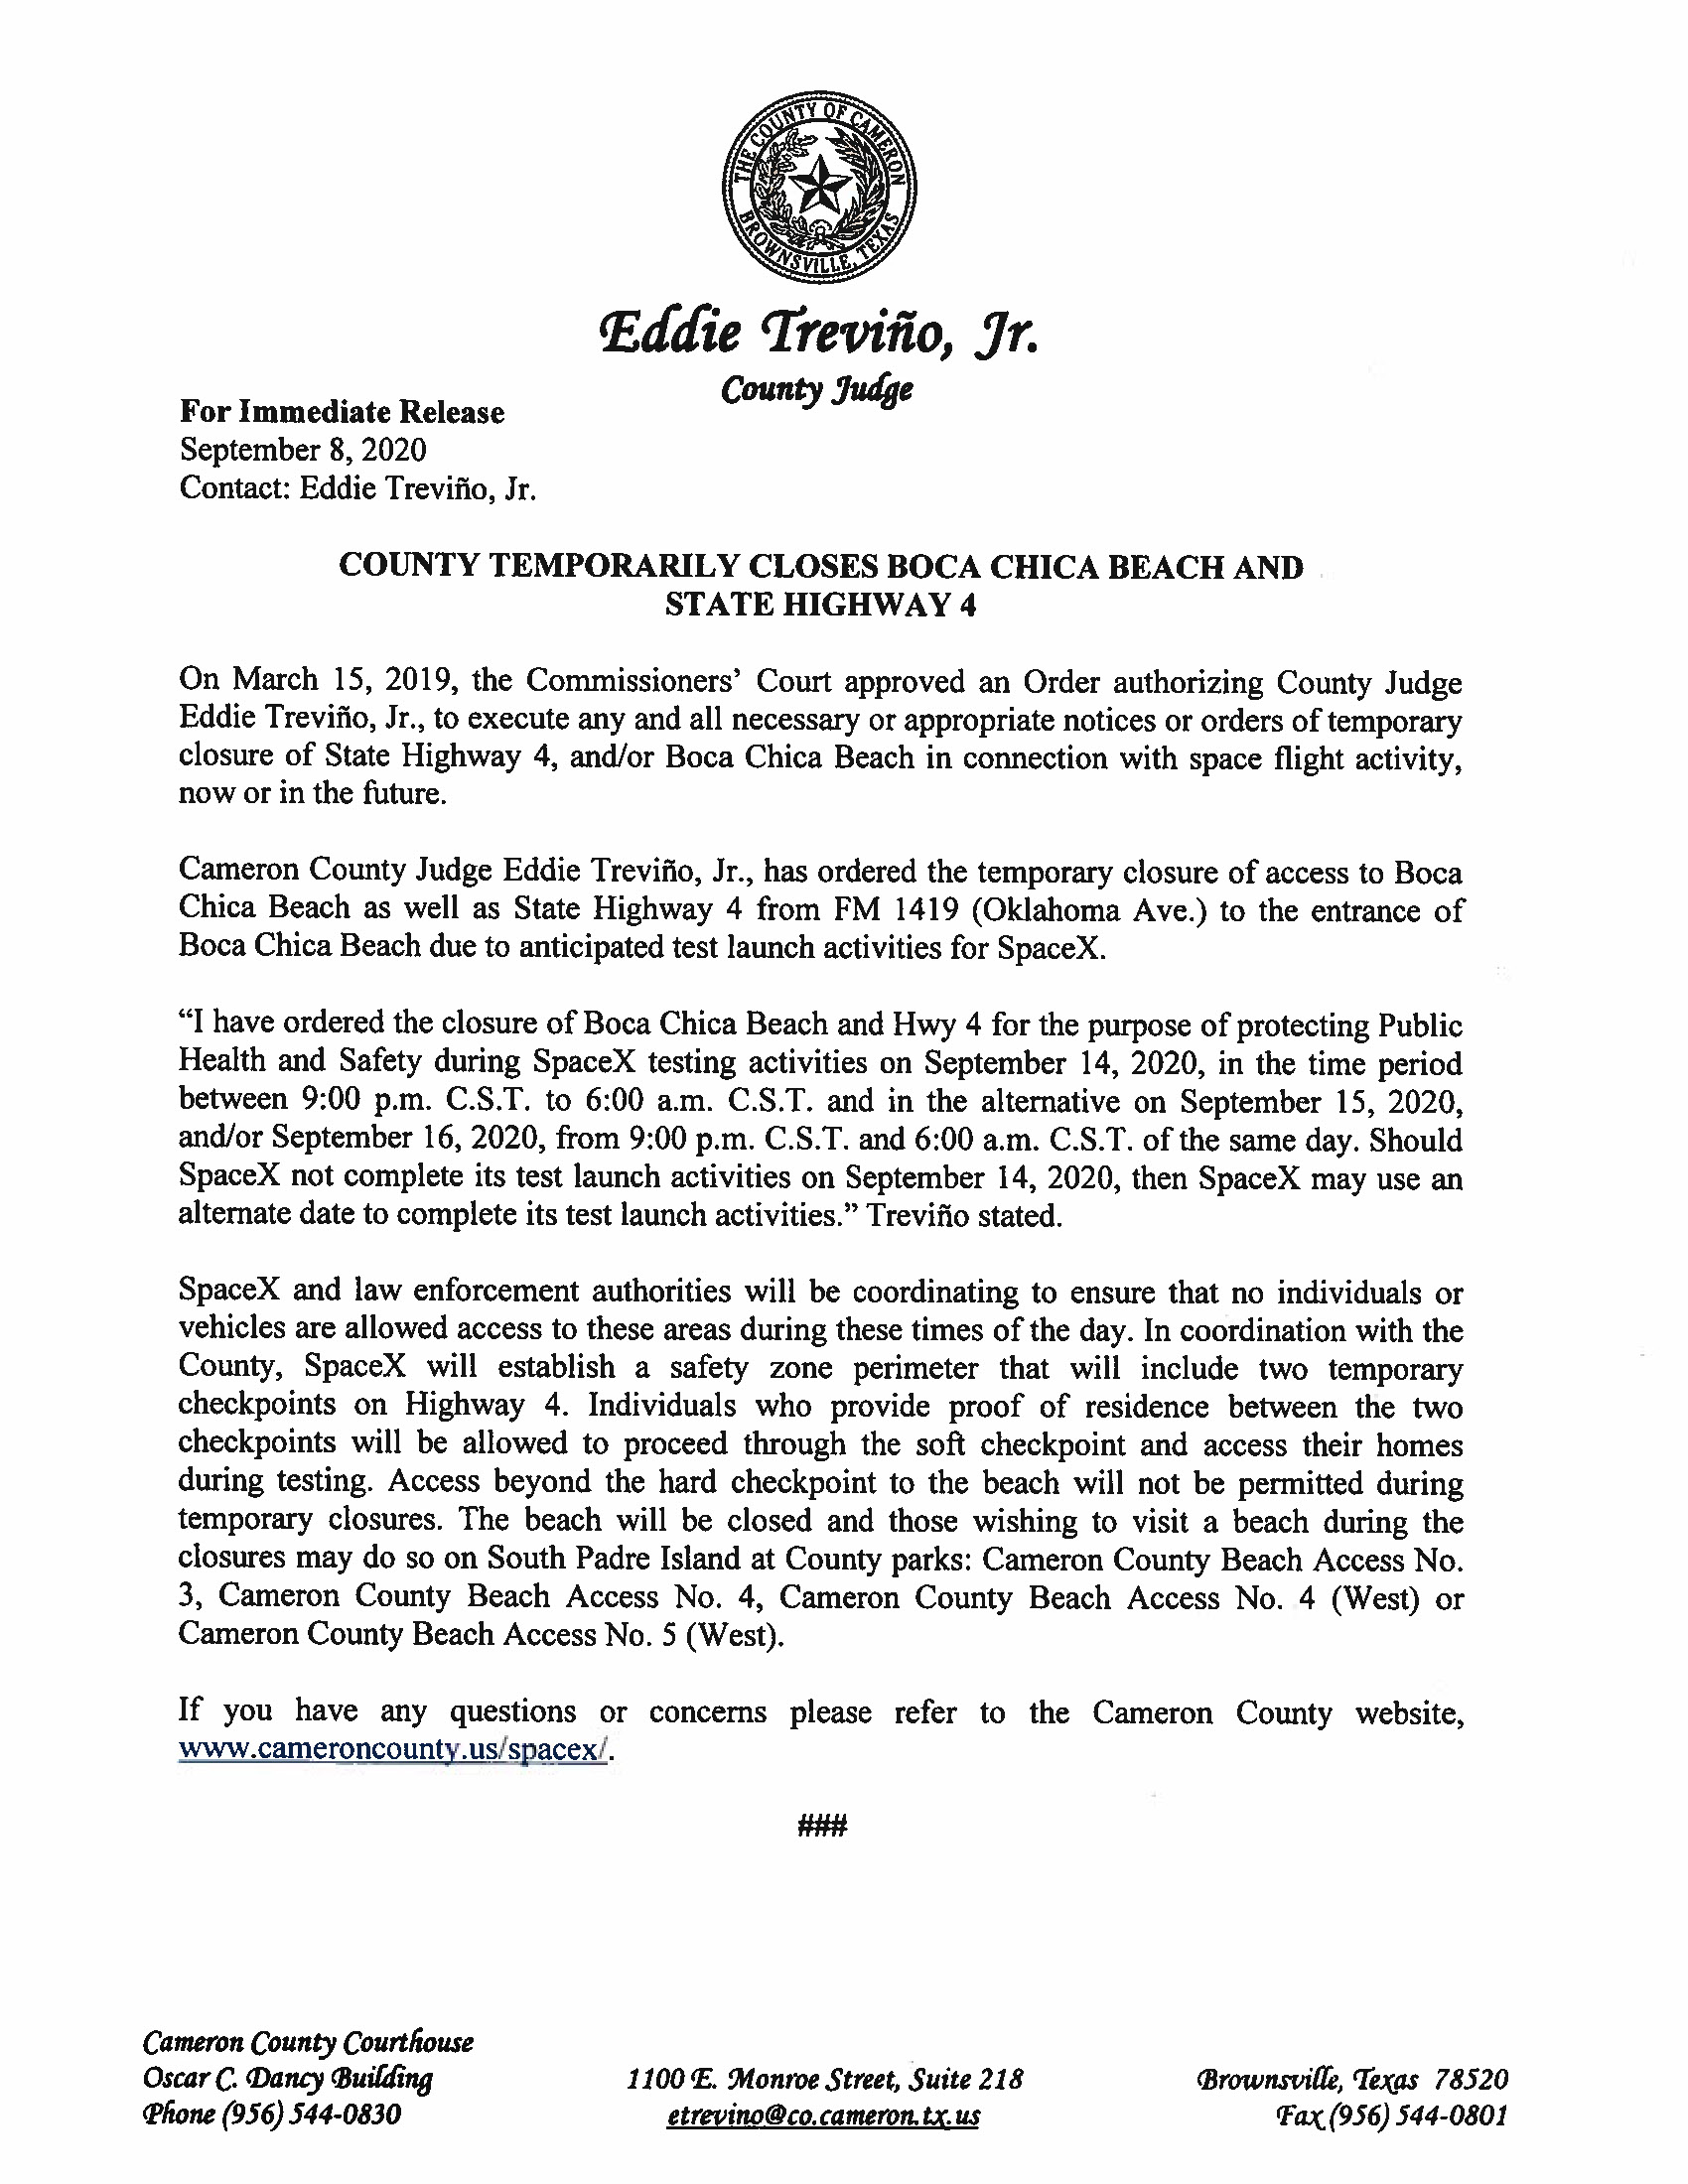 Press Release On Order Of Closure Related To SpaceX Flight English Spanish 9.14.20.doc Page 1